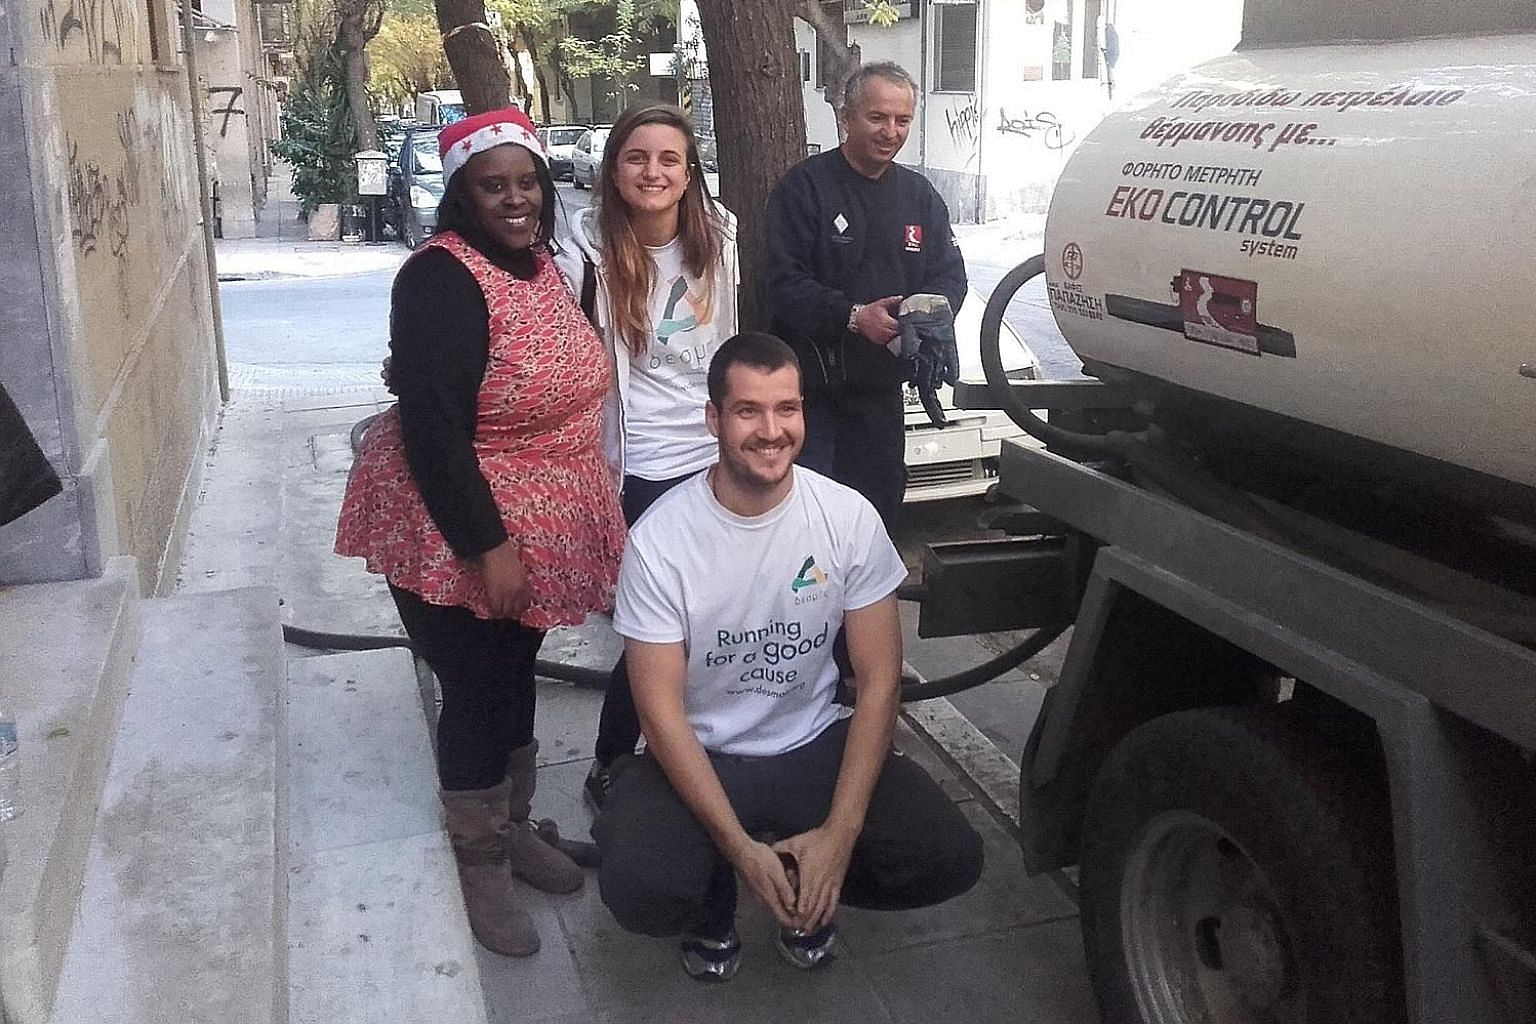 """Through the """"Desmos Gives Warmth"""" programme, the organisation supports charities across Greece to remain warm and keep operating during winter by supplying them heating oil. """"I Care and Act"""" is a Desmos programme through which students across Greece"""